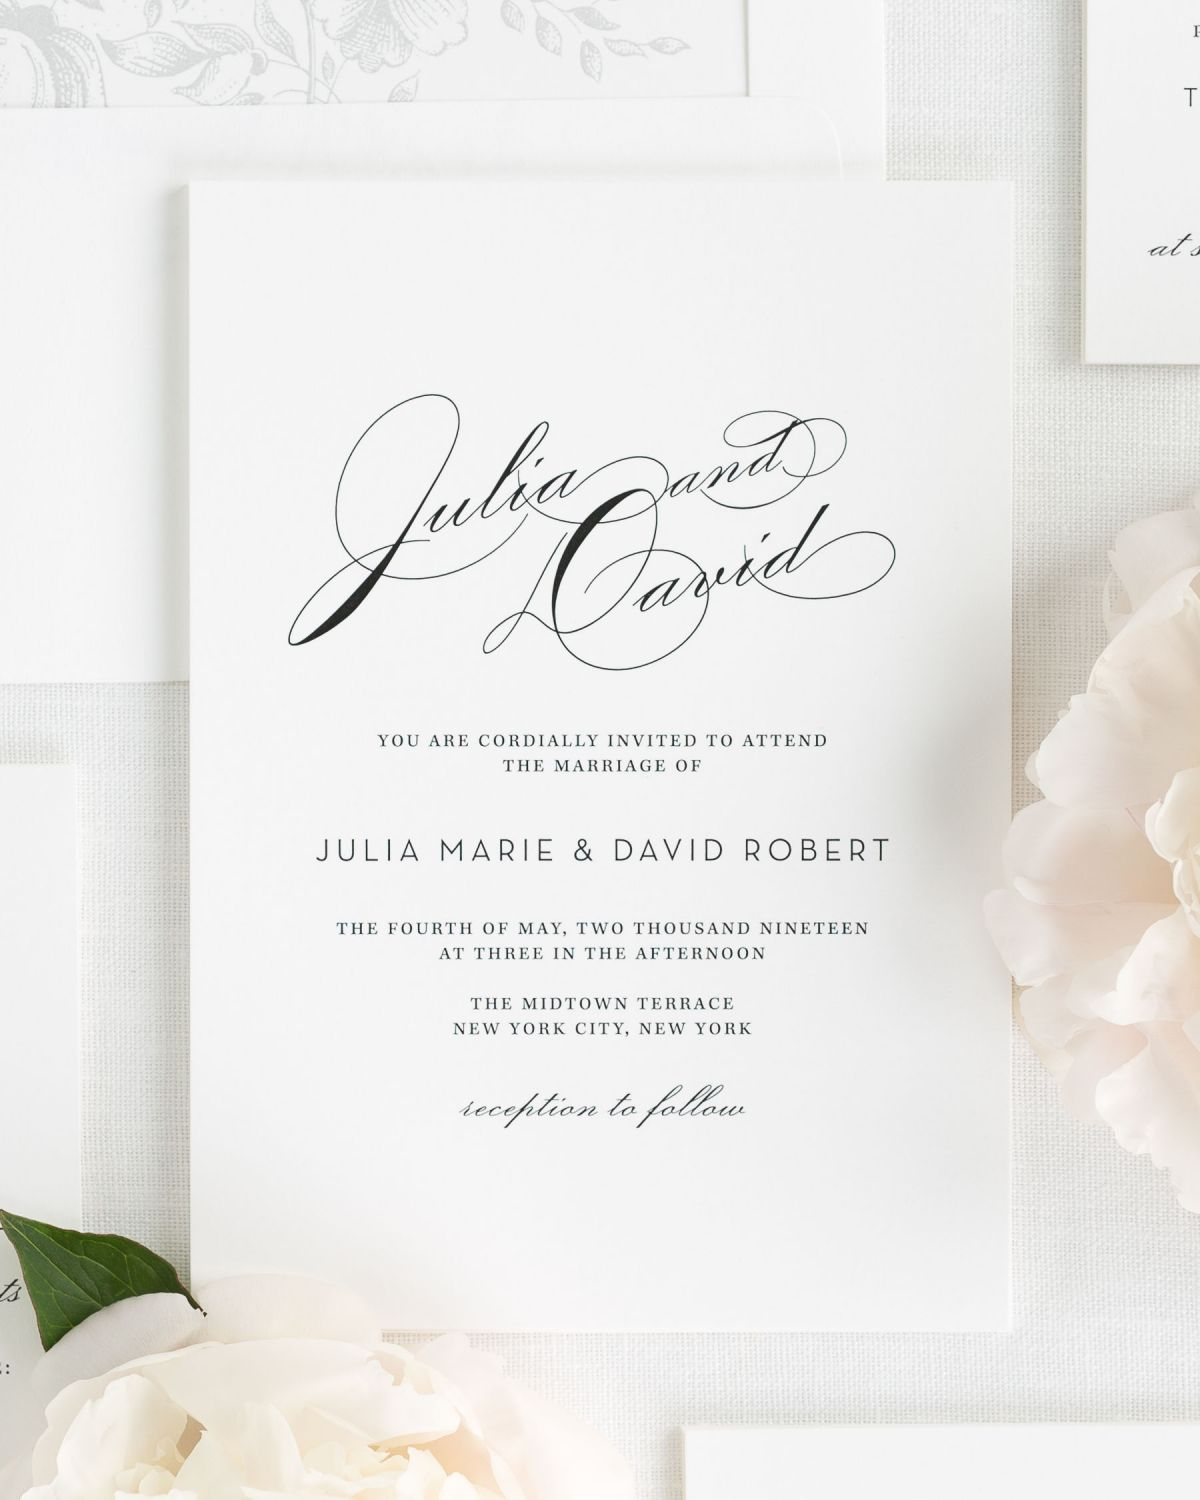 Vintage Wedding Invitations with Big Names